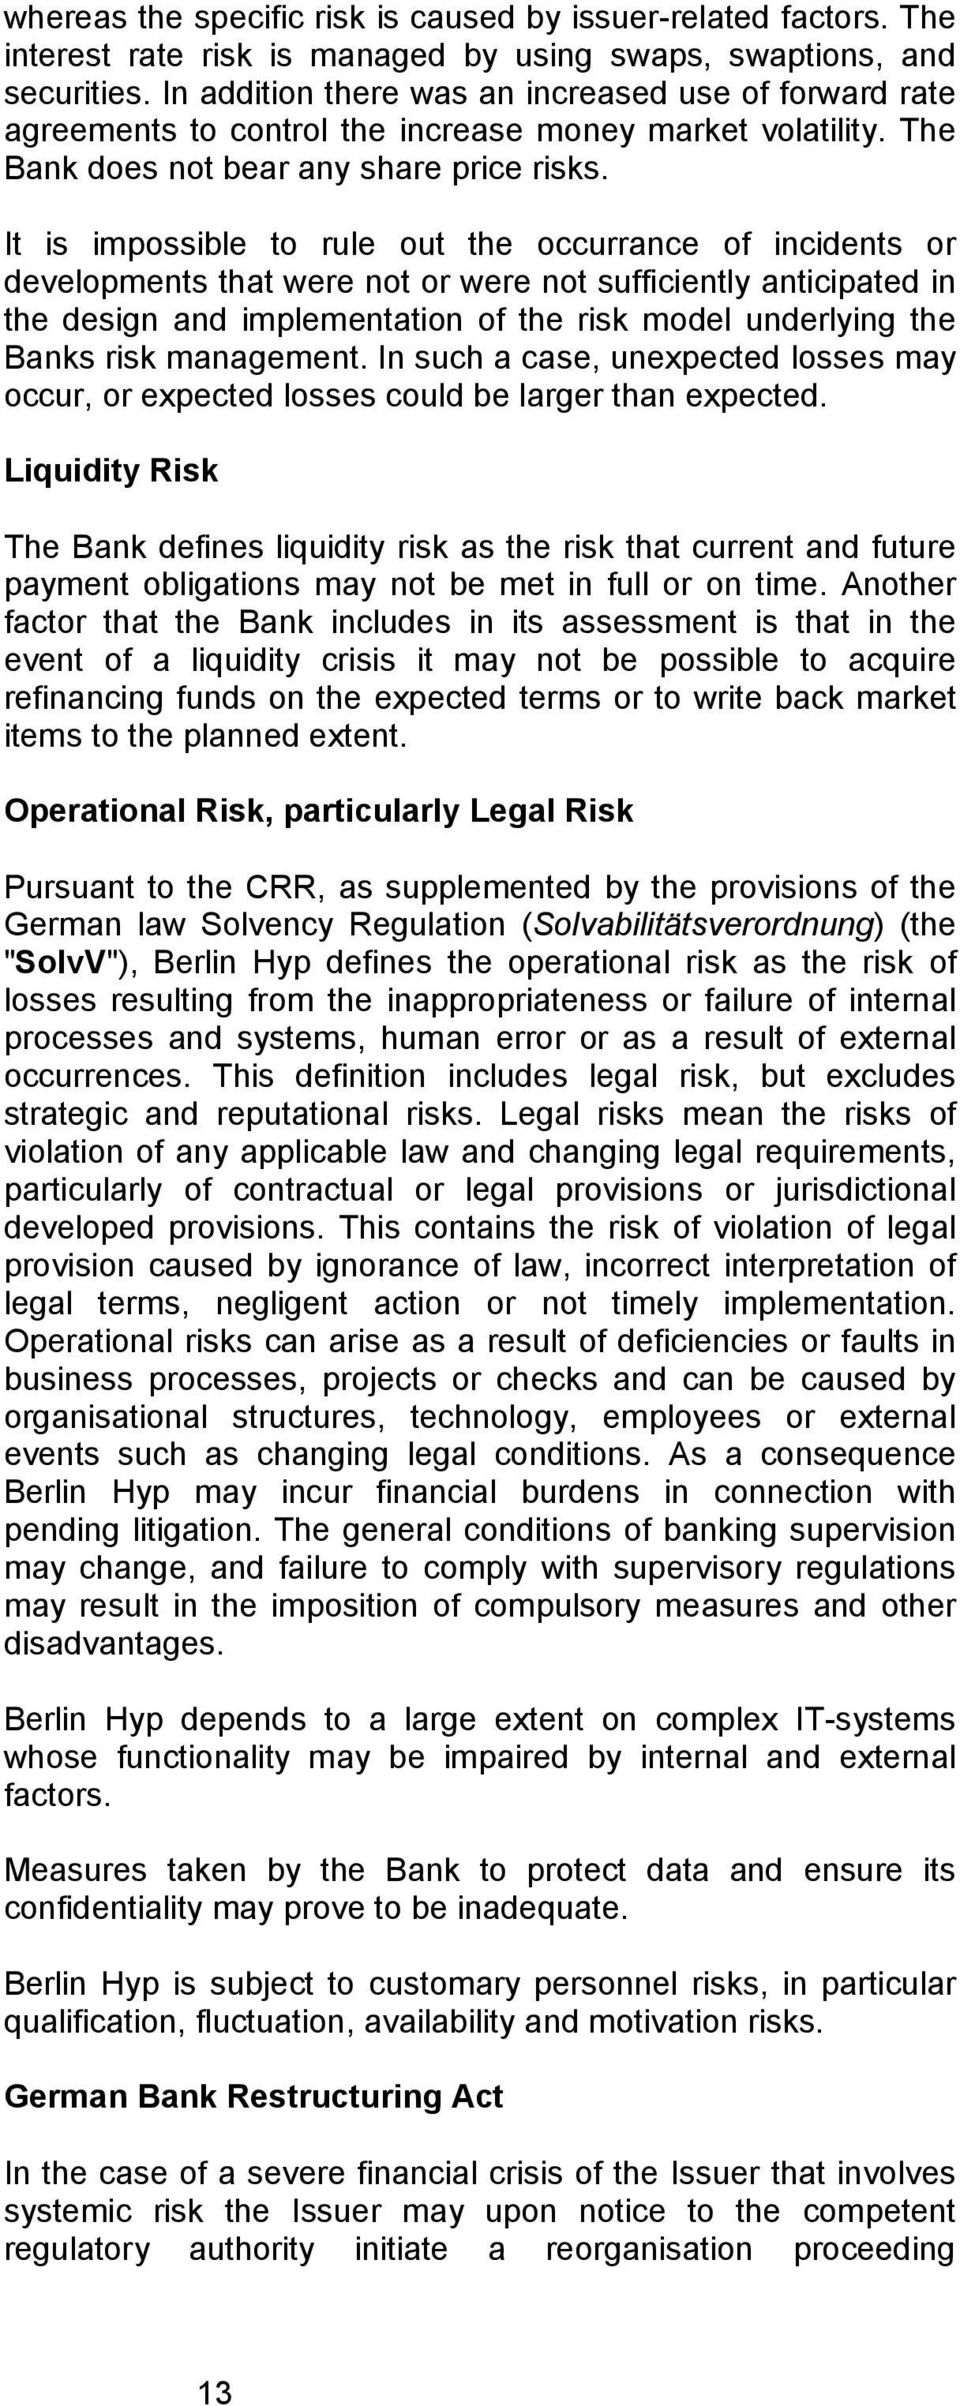 It is impossible to rule out the occurrance of incidents or developments that were not or were not sufficiently anticipated in the design and implementation of the risk model underlying the Banks